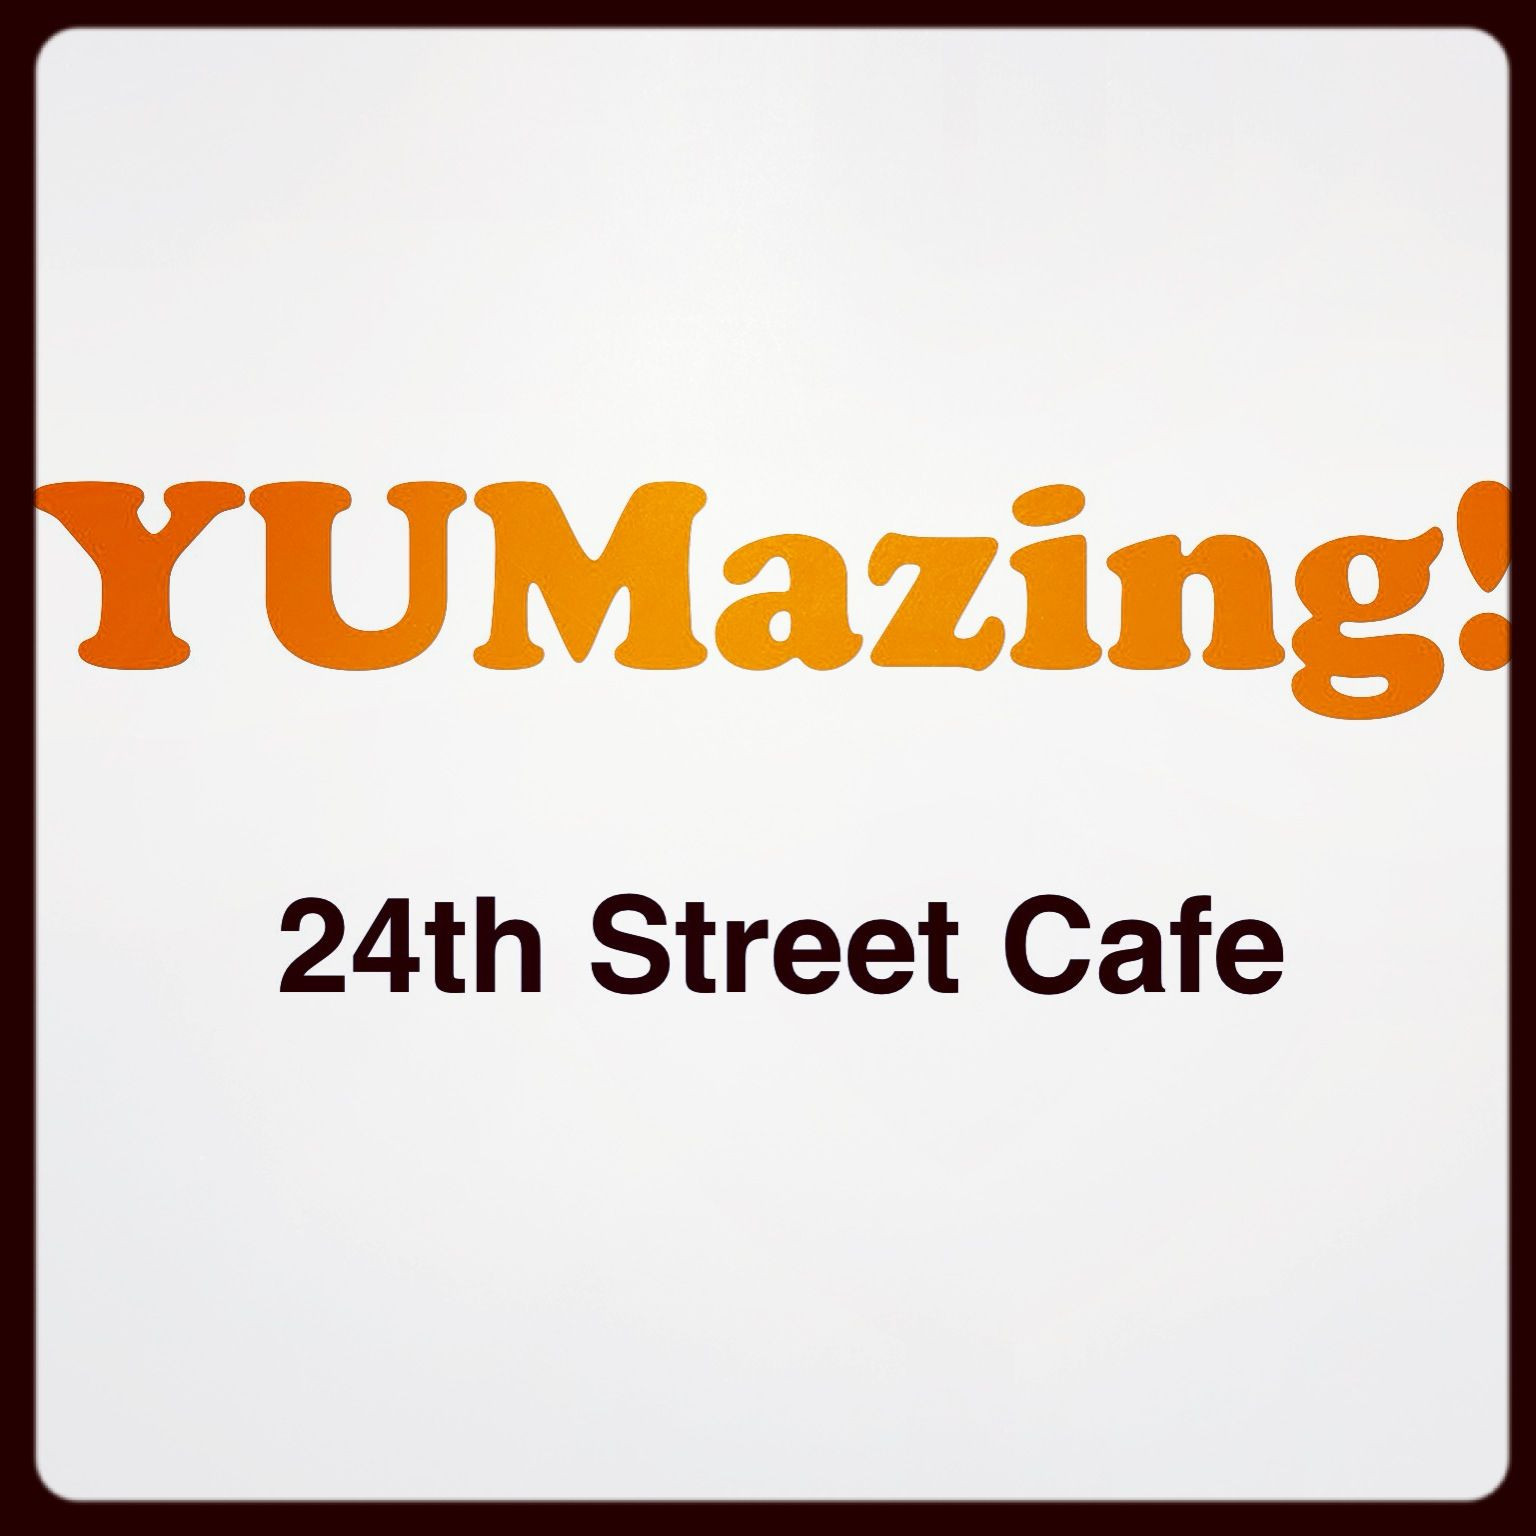 Best food in bakersfield is at 24thstreetcafe its